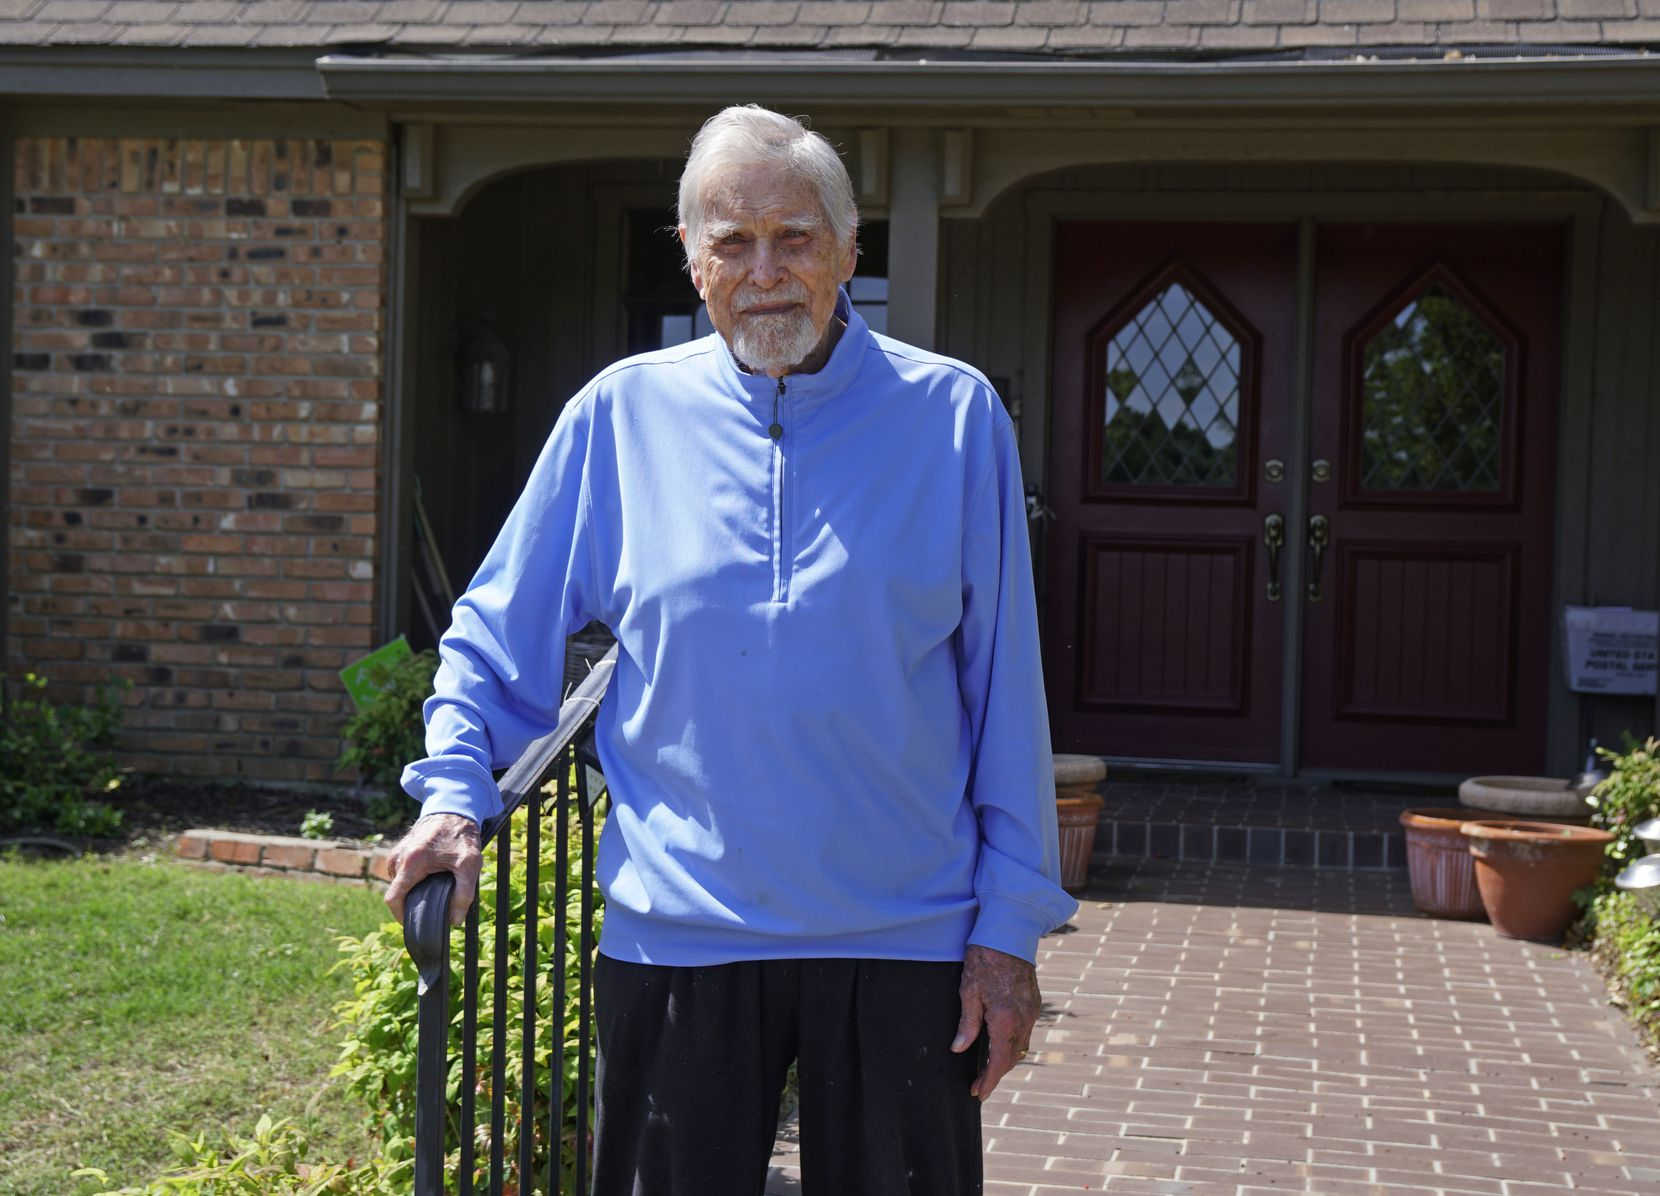 Eddie Robinson stands on the front steps of his home in Fort Worth. He is the oldest living former Major League Baseball player.